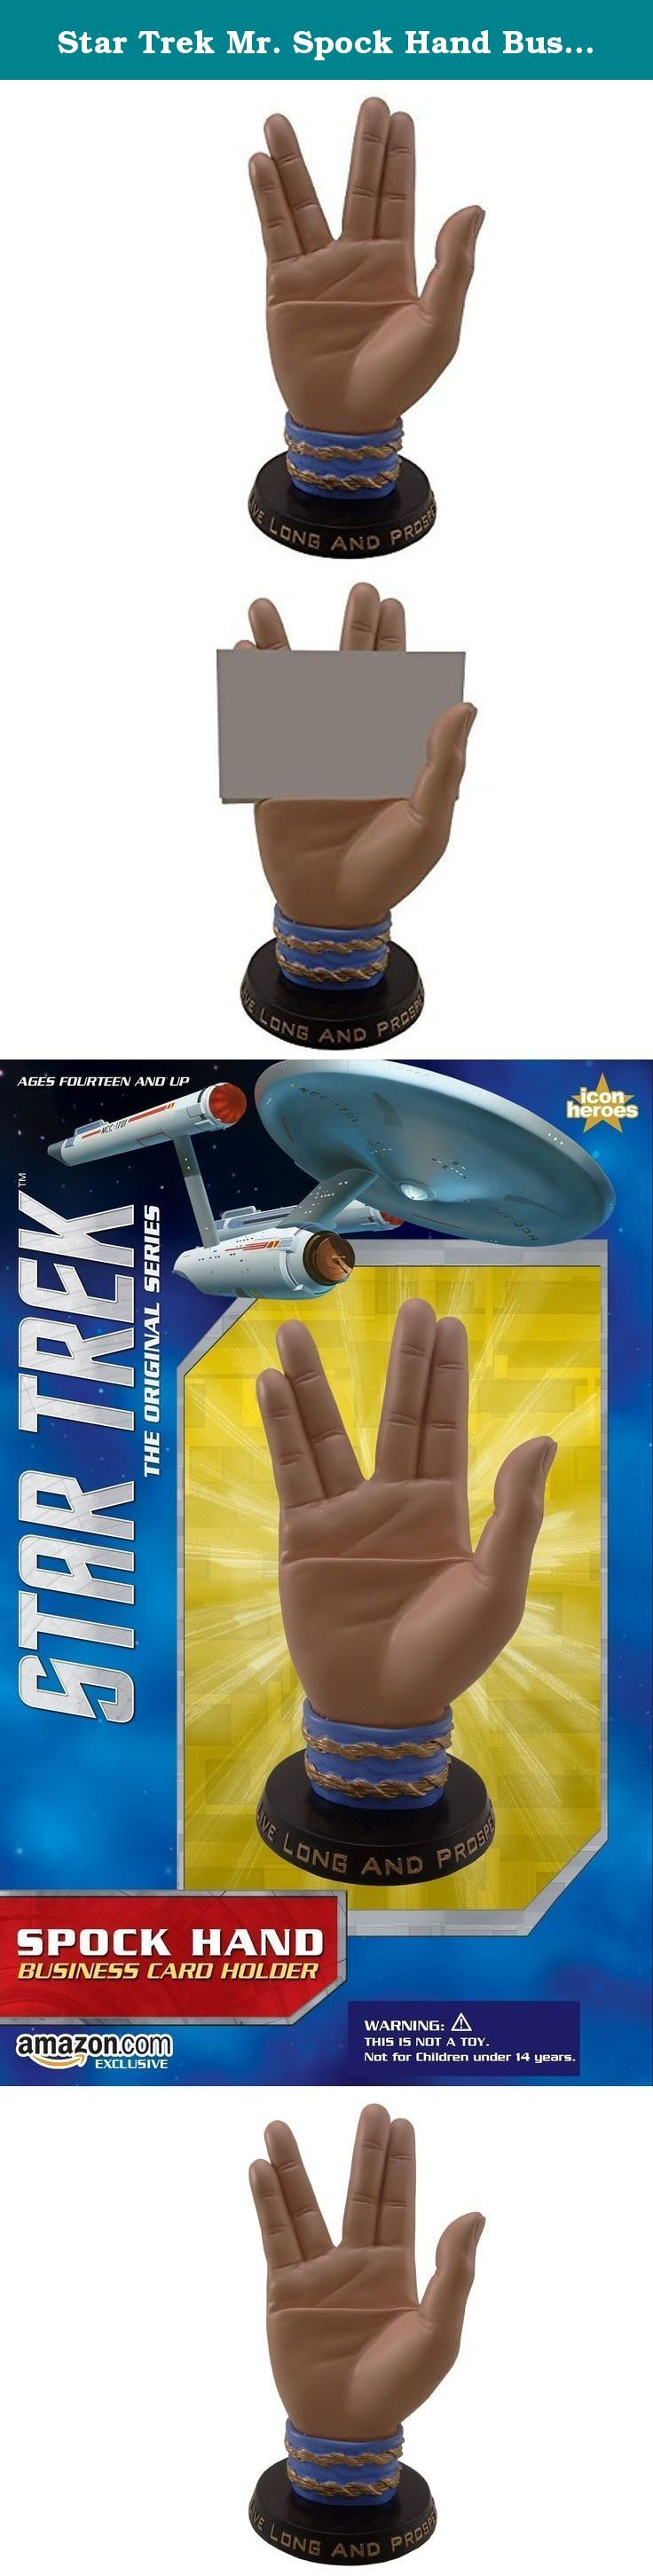 "Star Trek Mr. Spock Hand Business Card Holder. Live long and prosper the Vulcan way with the Star Trek Spock Hand Business Card Holder by Icon Heroes. Approximately measures 6.5"" H x 4.5""W x 2.5"" D and weighs 1.3 lb. Made of sturdy poly stone, each piece is meticulously hand painted. Easily recognizable, the Star Trek Spock Hand Business Card Holder is sure to be a conversation piece of any Star Trek collection."